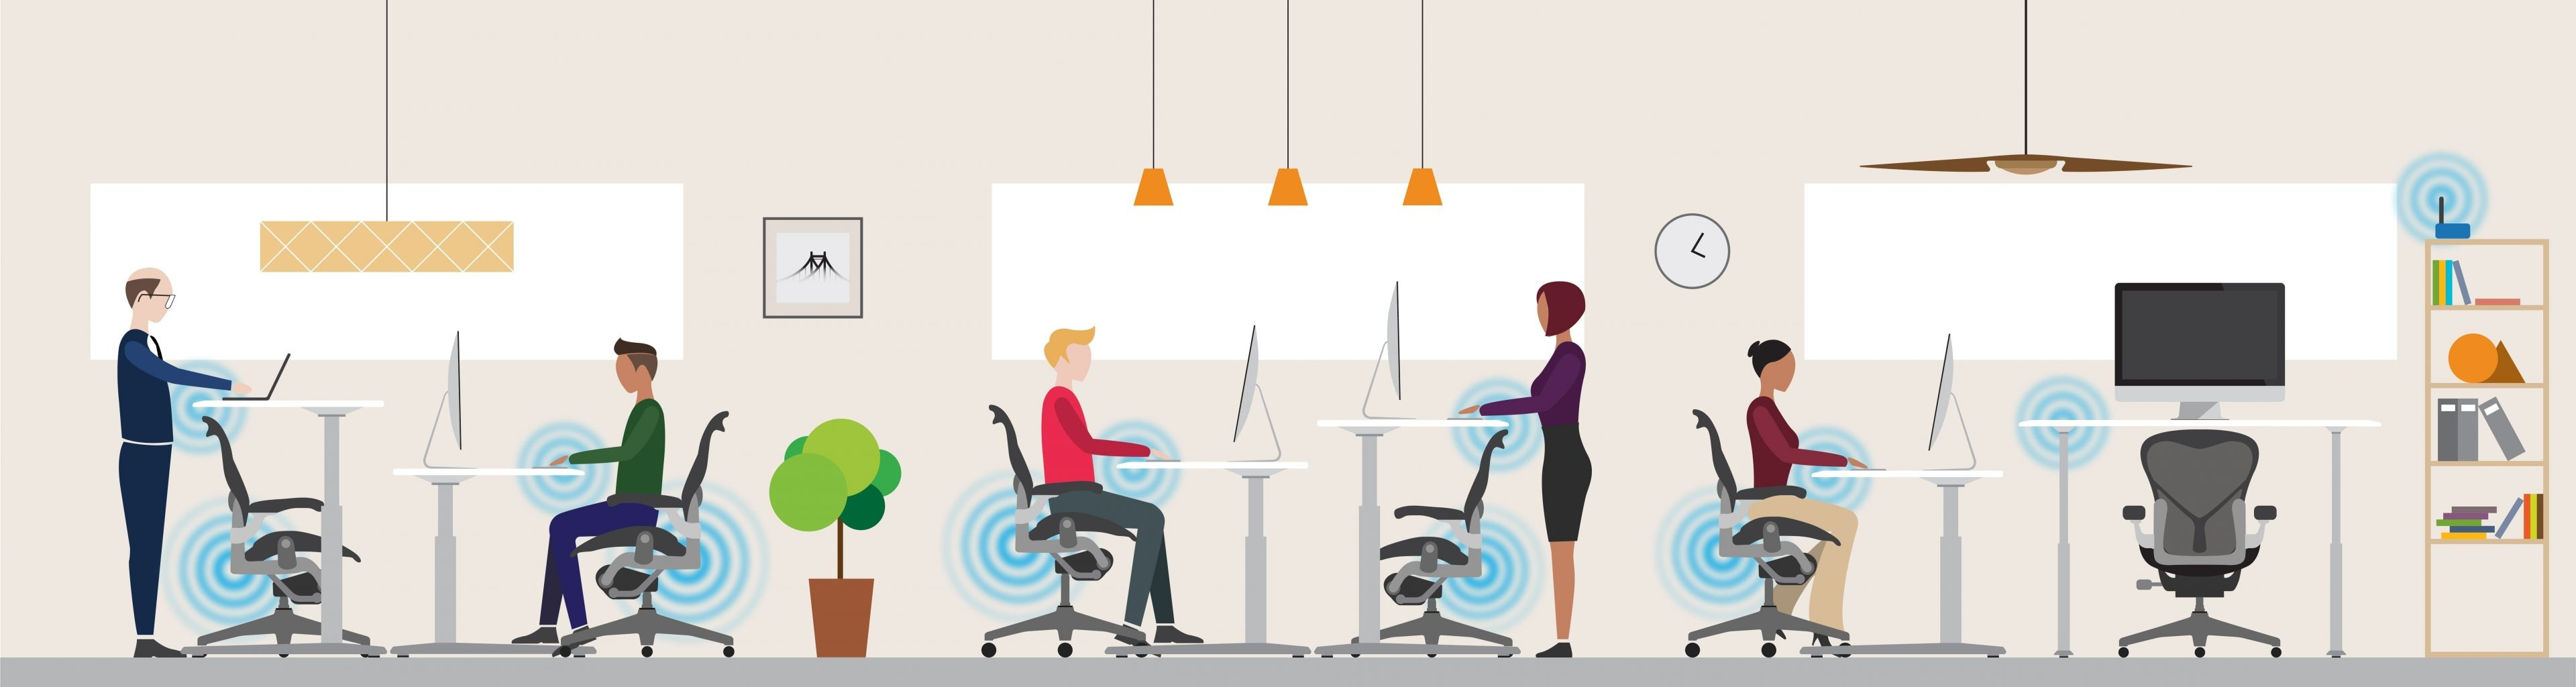 Innovating for employee wellbeing: one connected chair and desk at a time